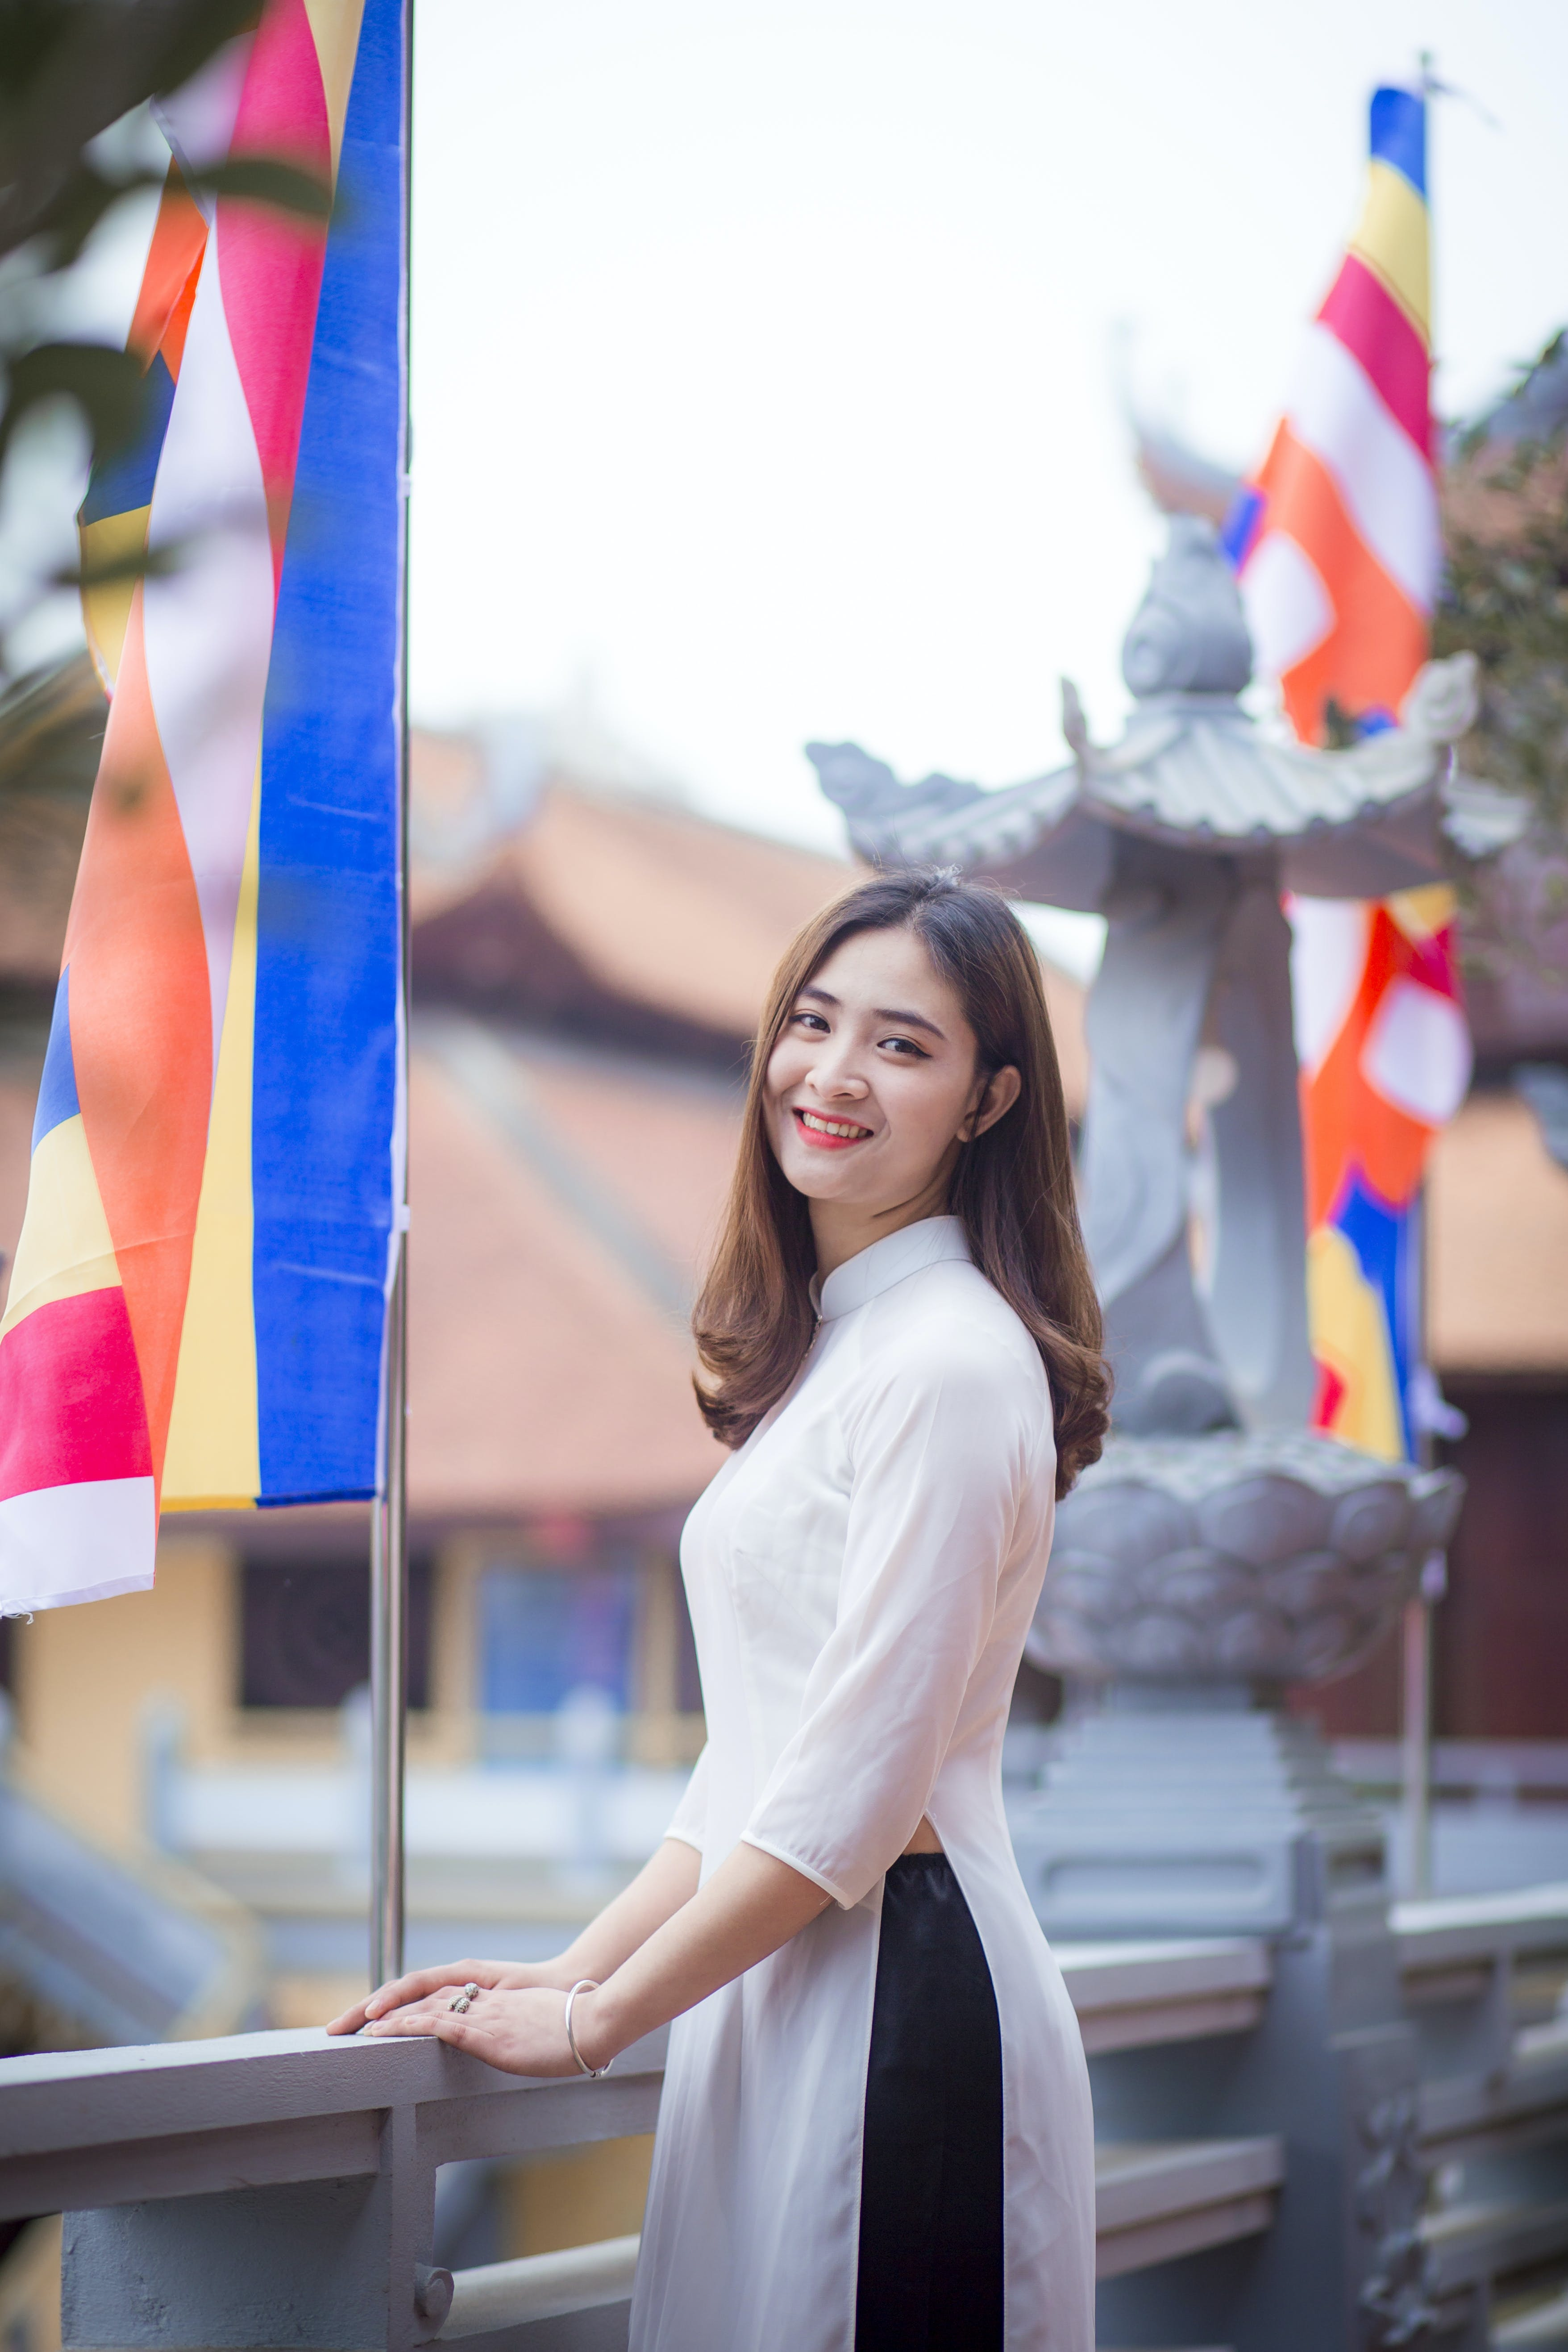 Depth of Field Photo of Woman Wearing White Dress Standing Near Flag Pole